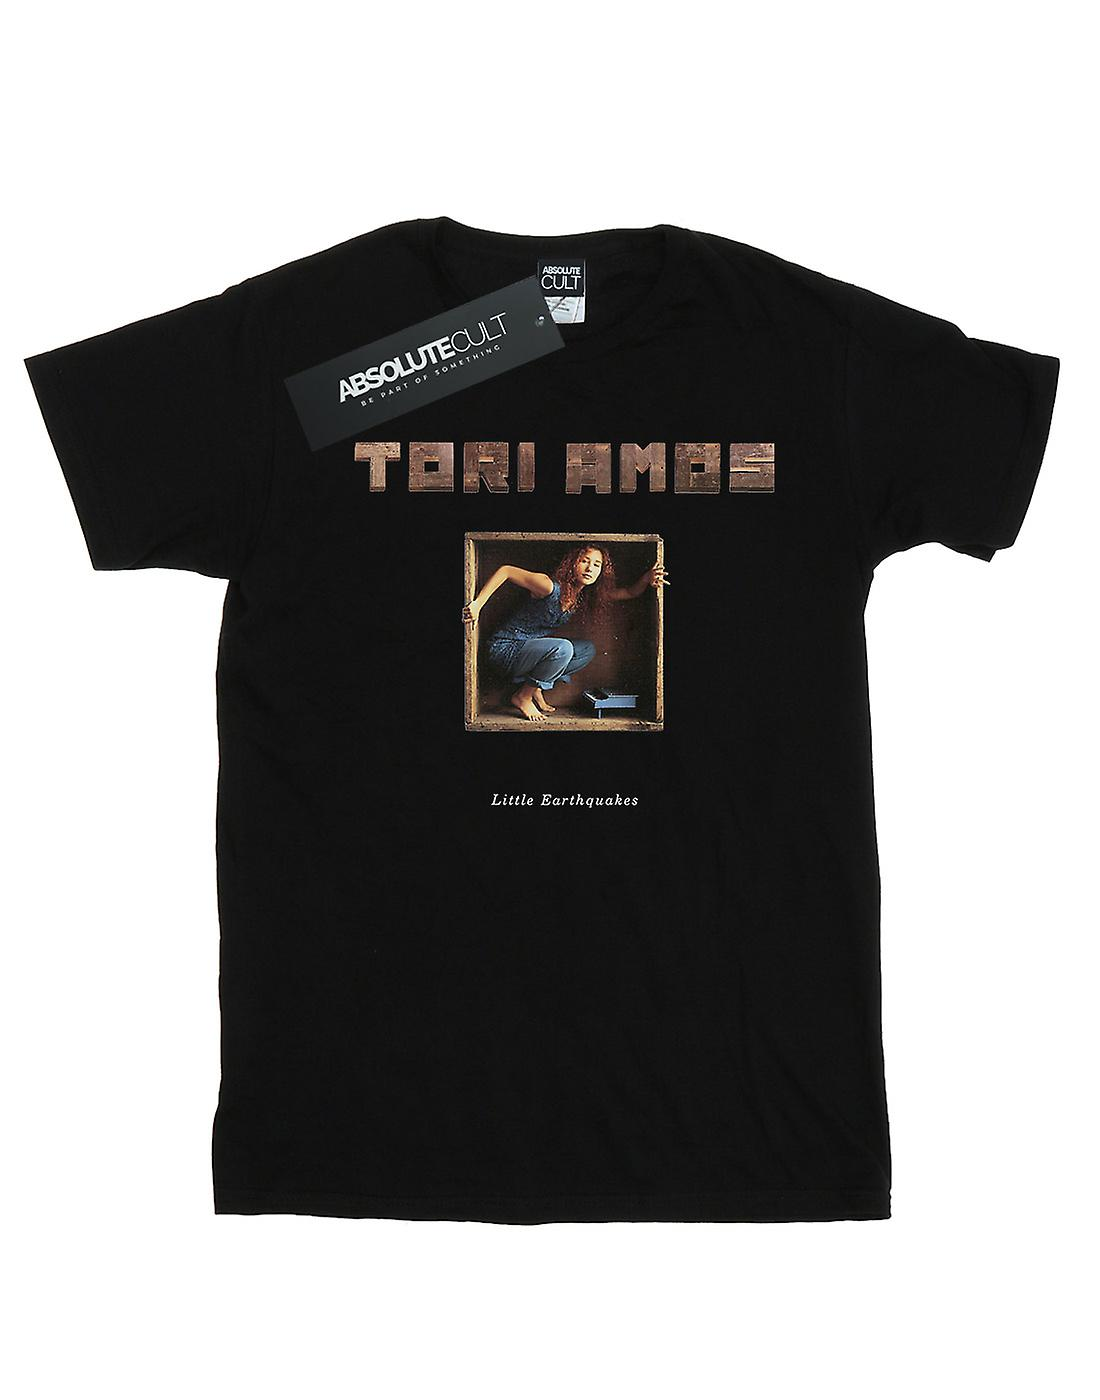 Tori Amos Boys Little Earthquakes T-Shirt